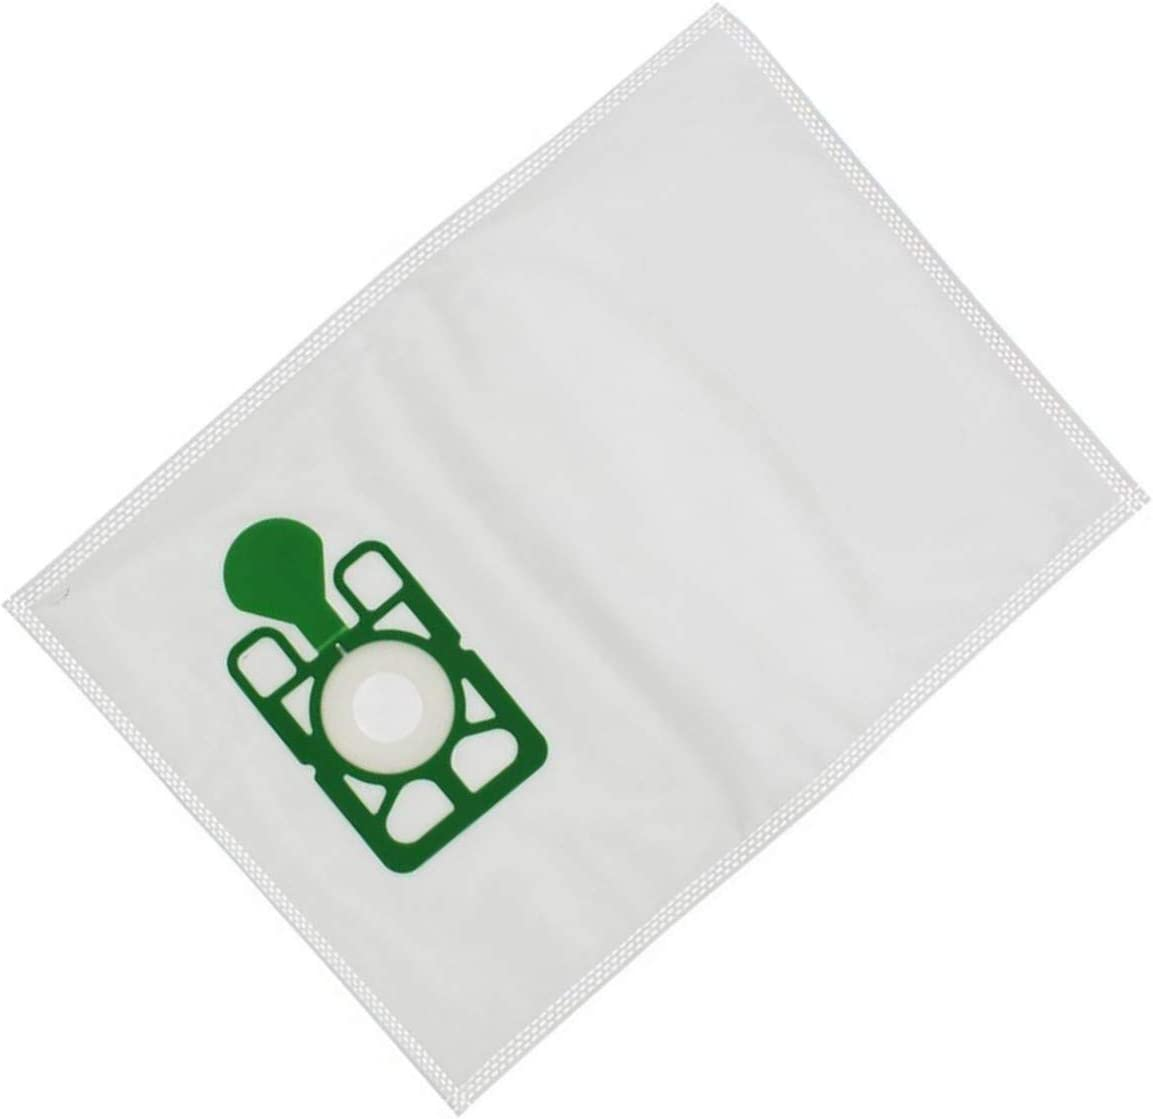 FindASpare Vacuum Cleaner Microfibre Poly Dust Bags for Henry Numatic Hetty Basil James (Pack of 10) Pack of 20